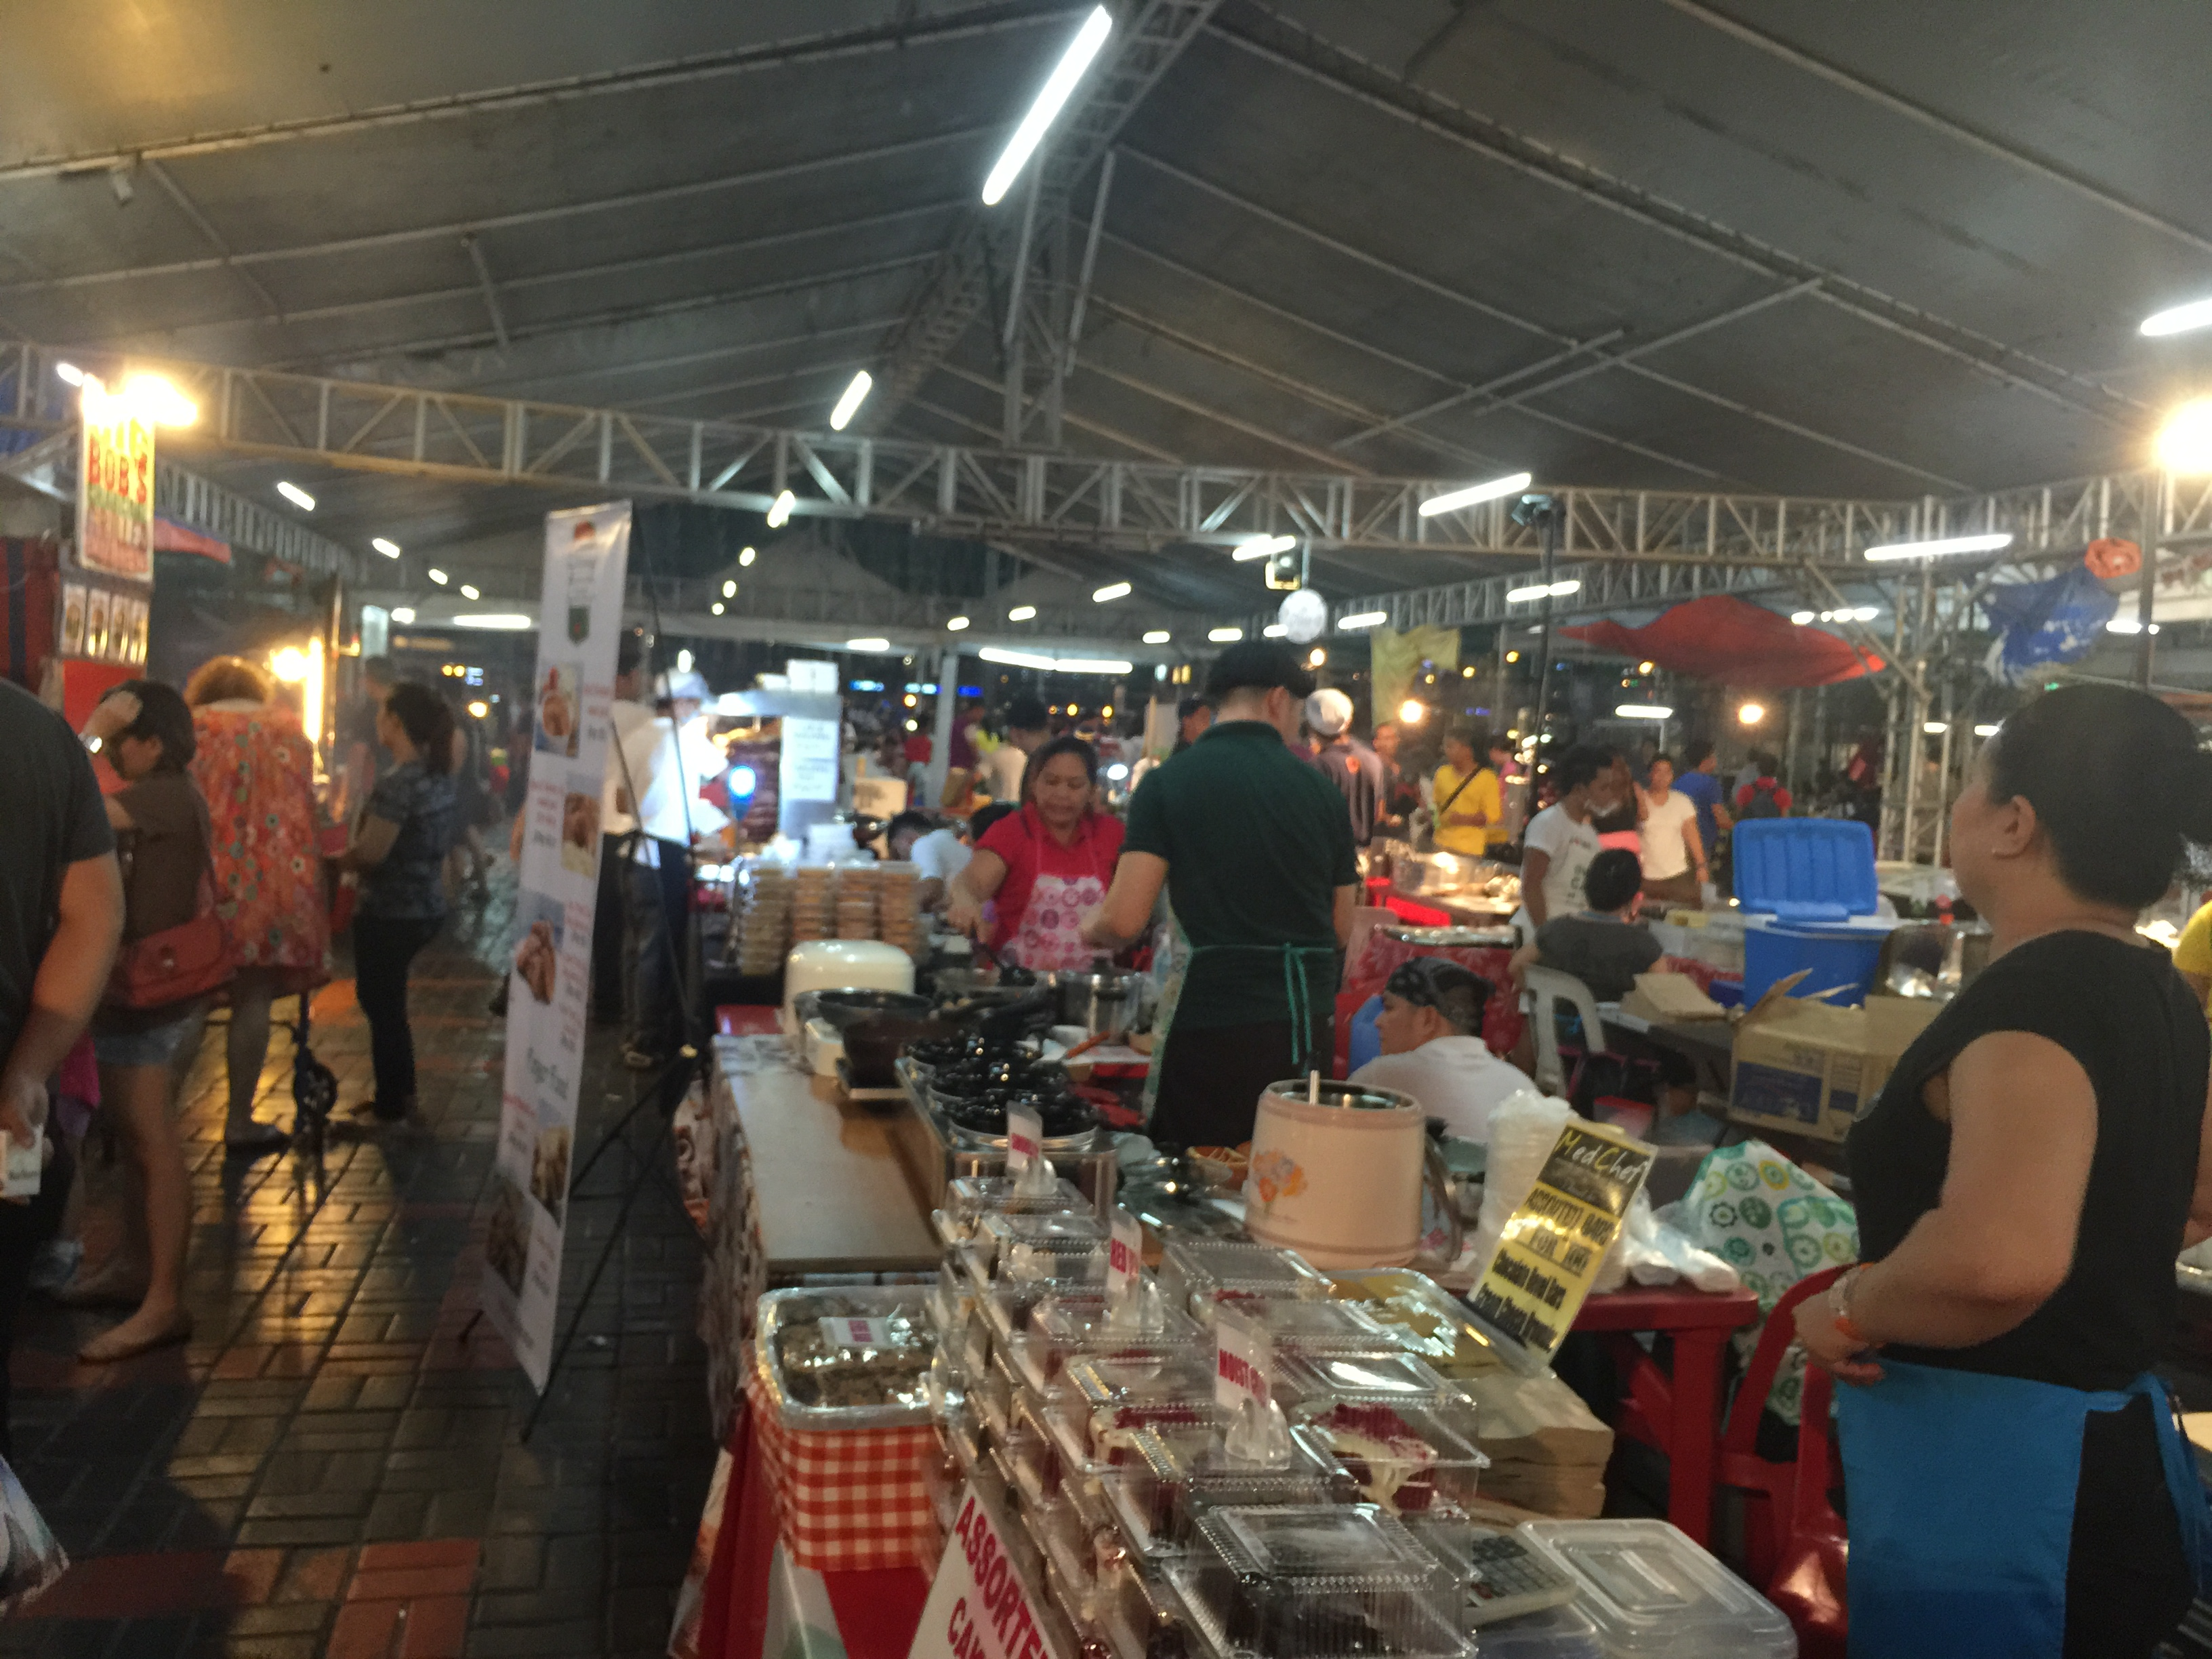 Mercato, or any food bazaar or market, is alive with many choices. It is here where new food concepts are usually tested.